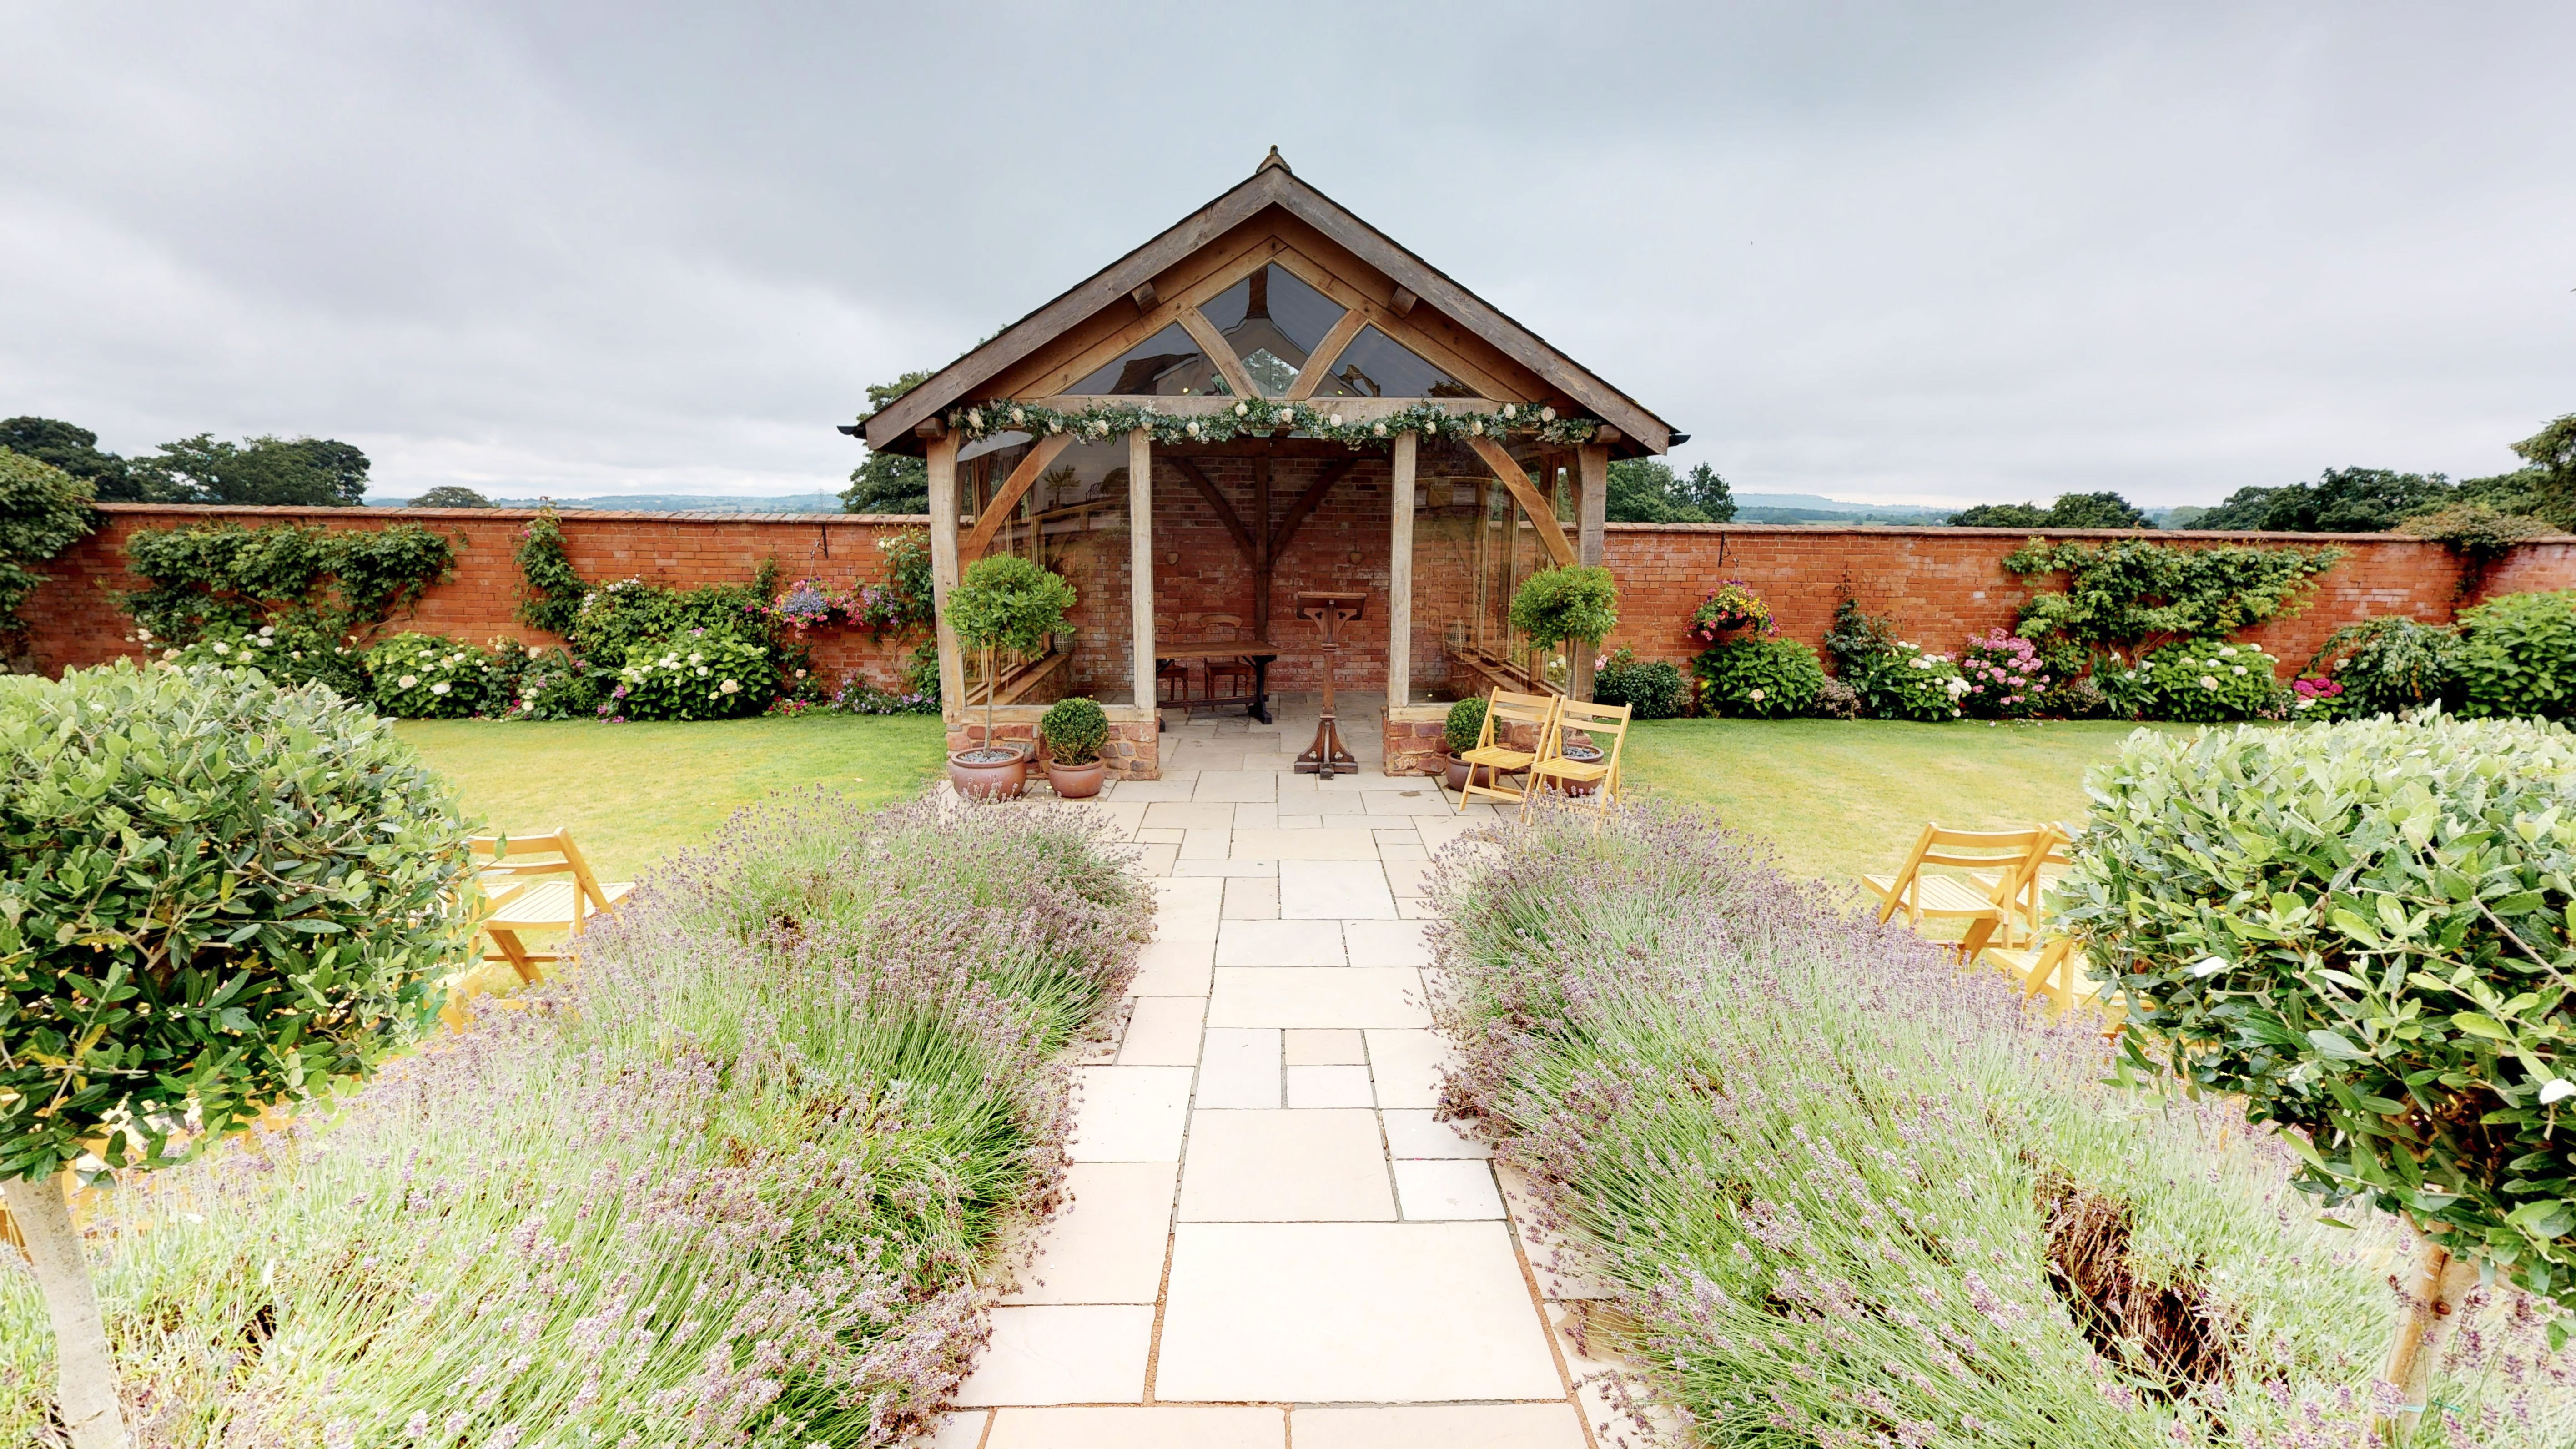 The Walled Garden Arbour